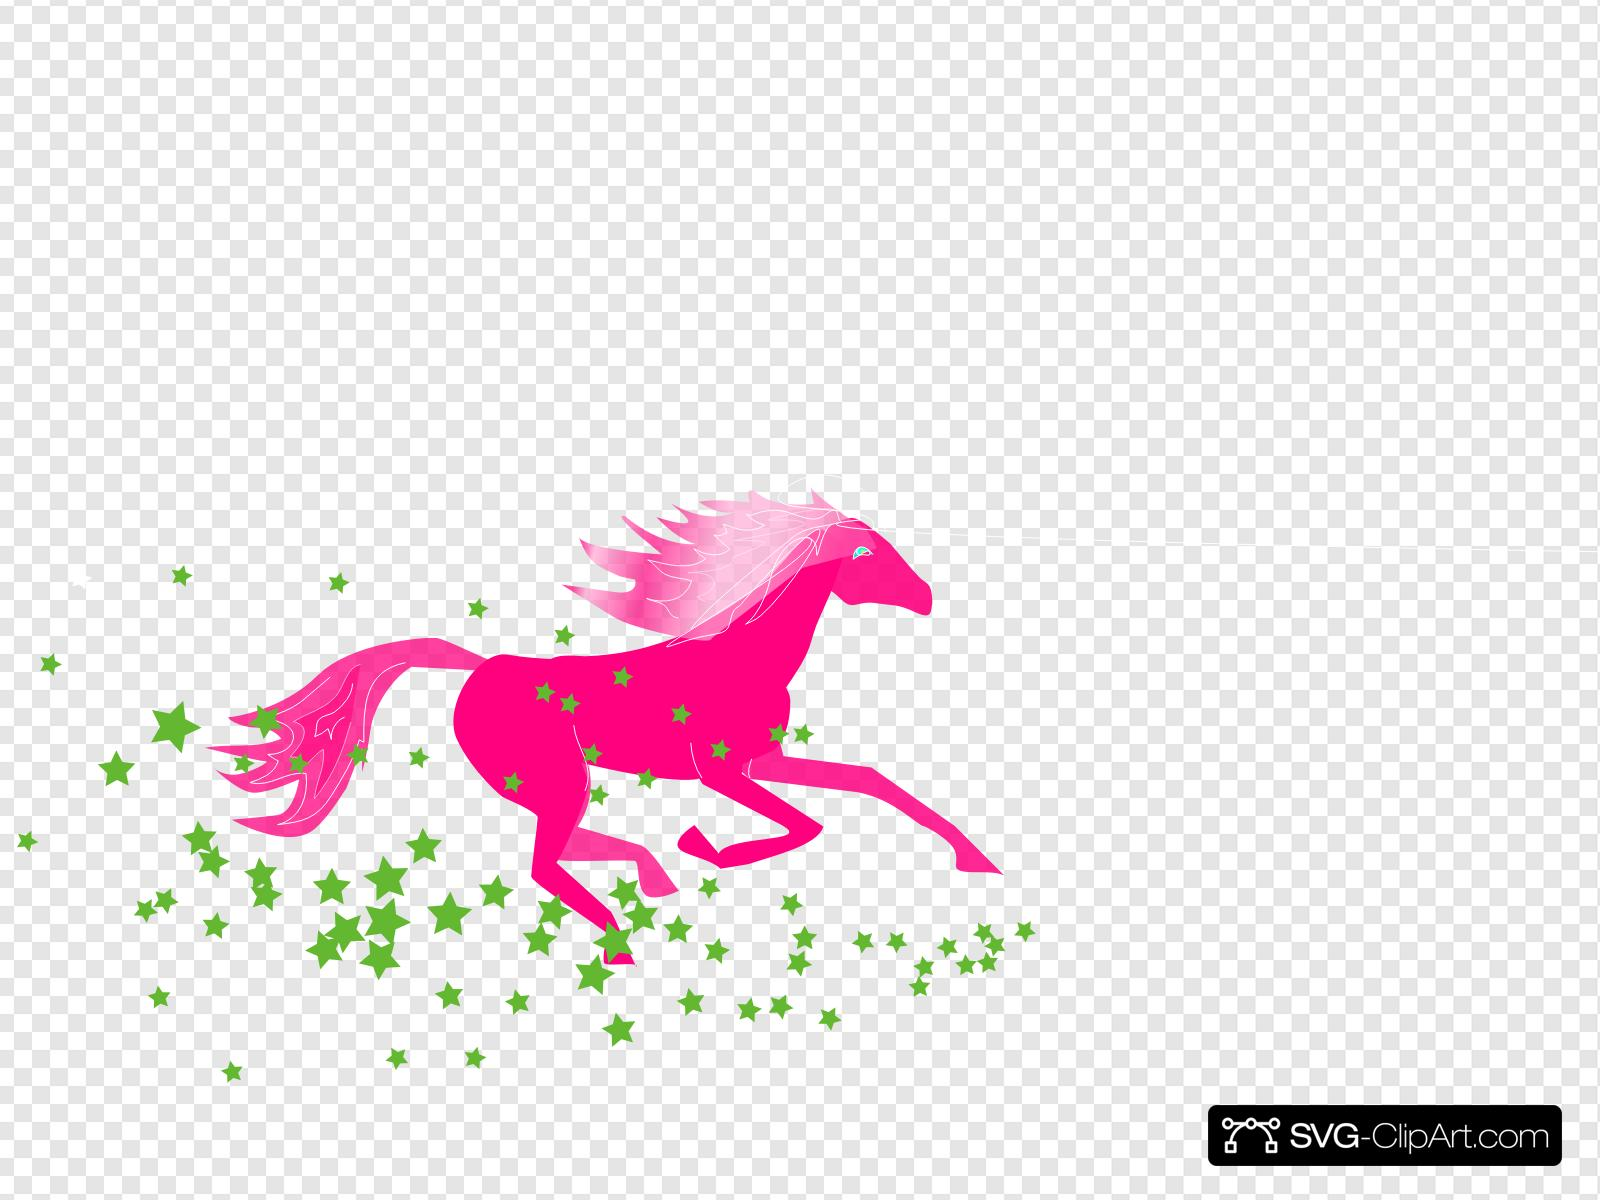 Pink Pony Clip art, Icon and SVG.